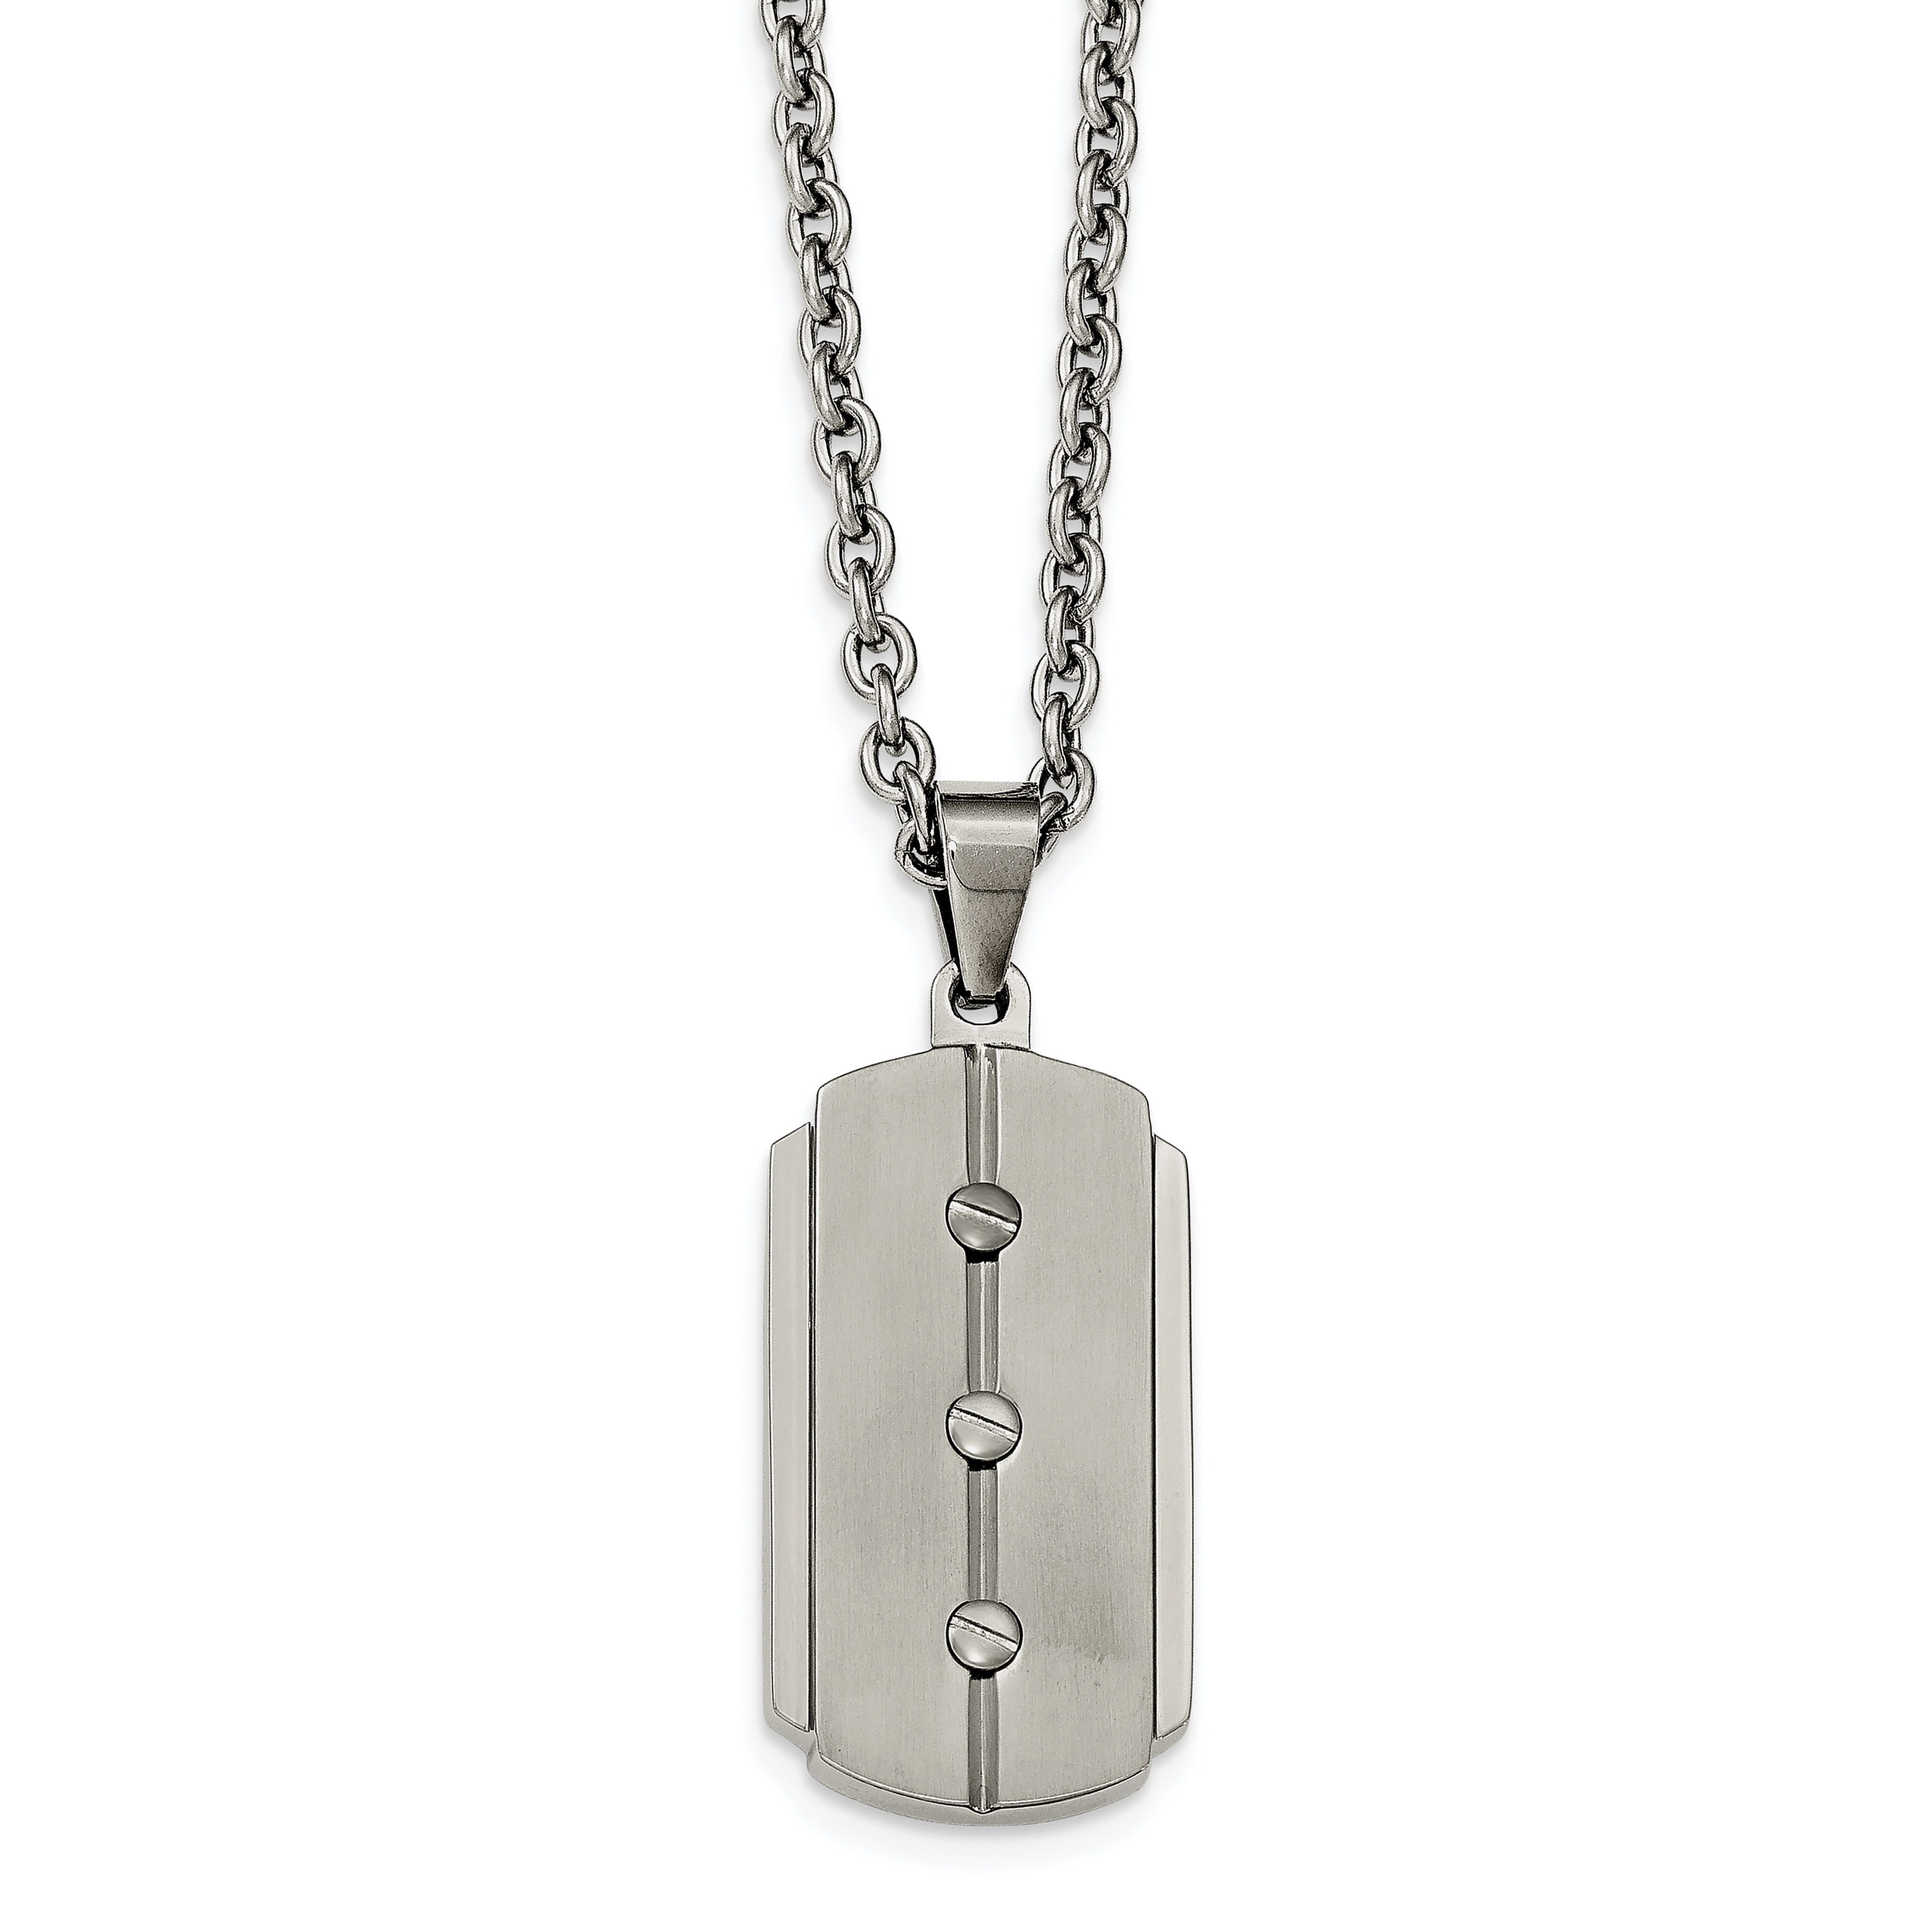 Jewelry Necklaces Necklace with Pendants Stainless Steel Brushed and Polished Dog Tag Necklace